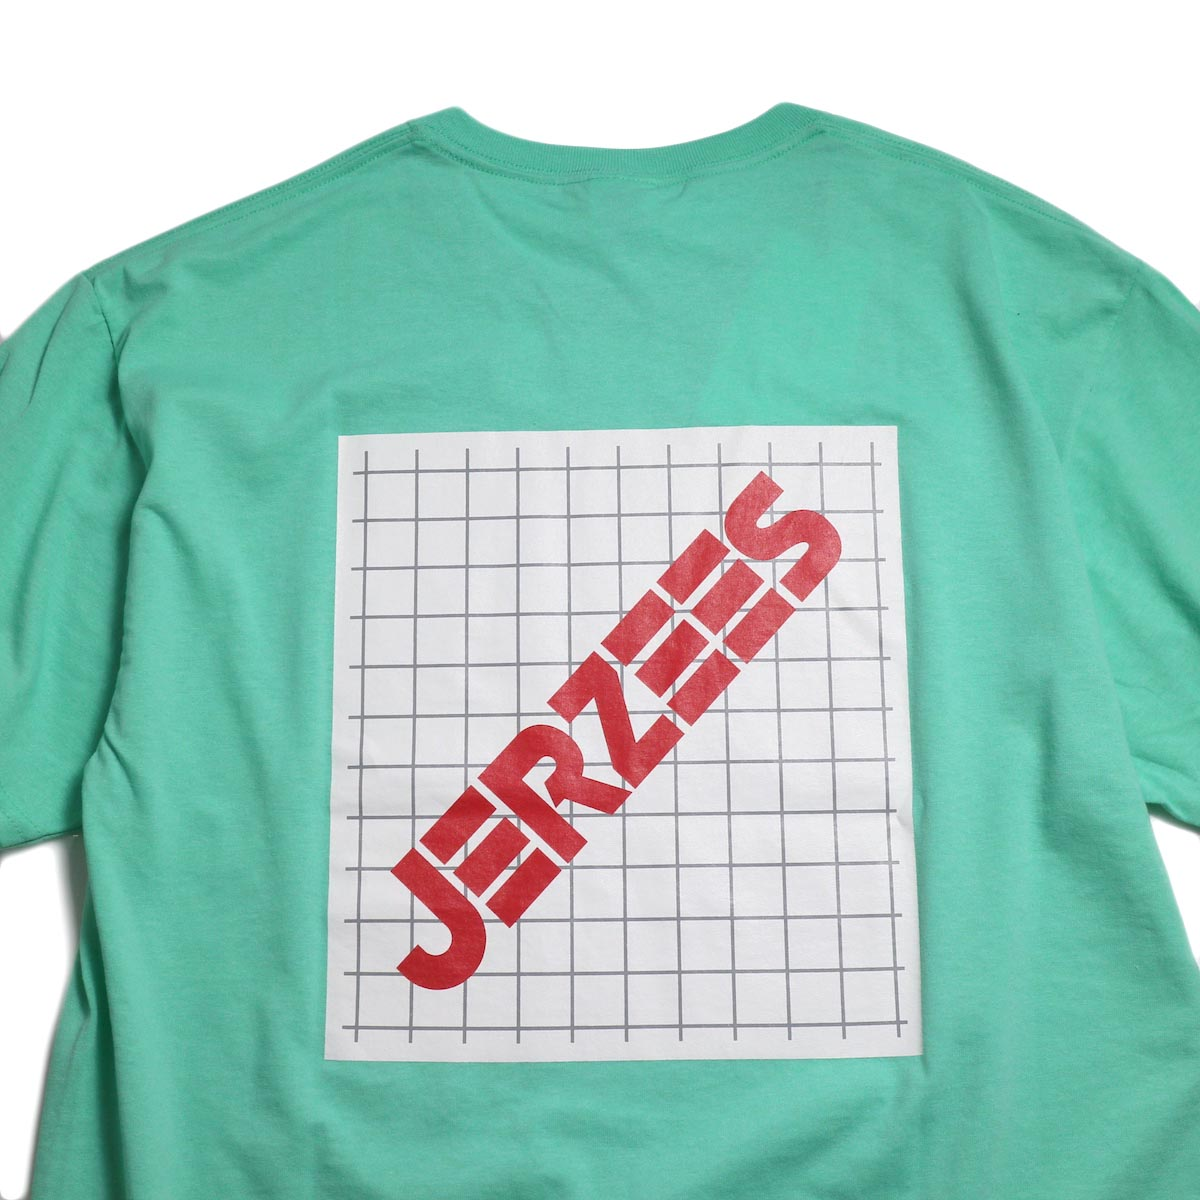 N.HOOLYWOOD × JERZEES  / 191-CS44-070 Short Sleeve Tee -Mint バックプリント